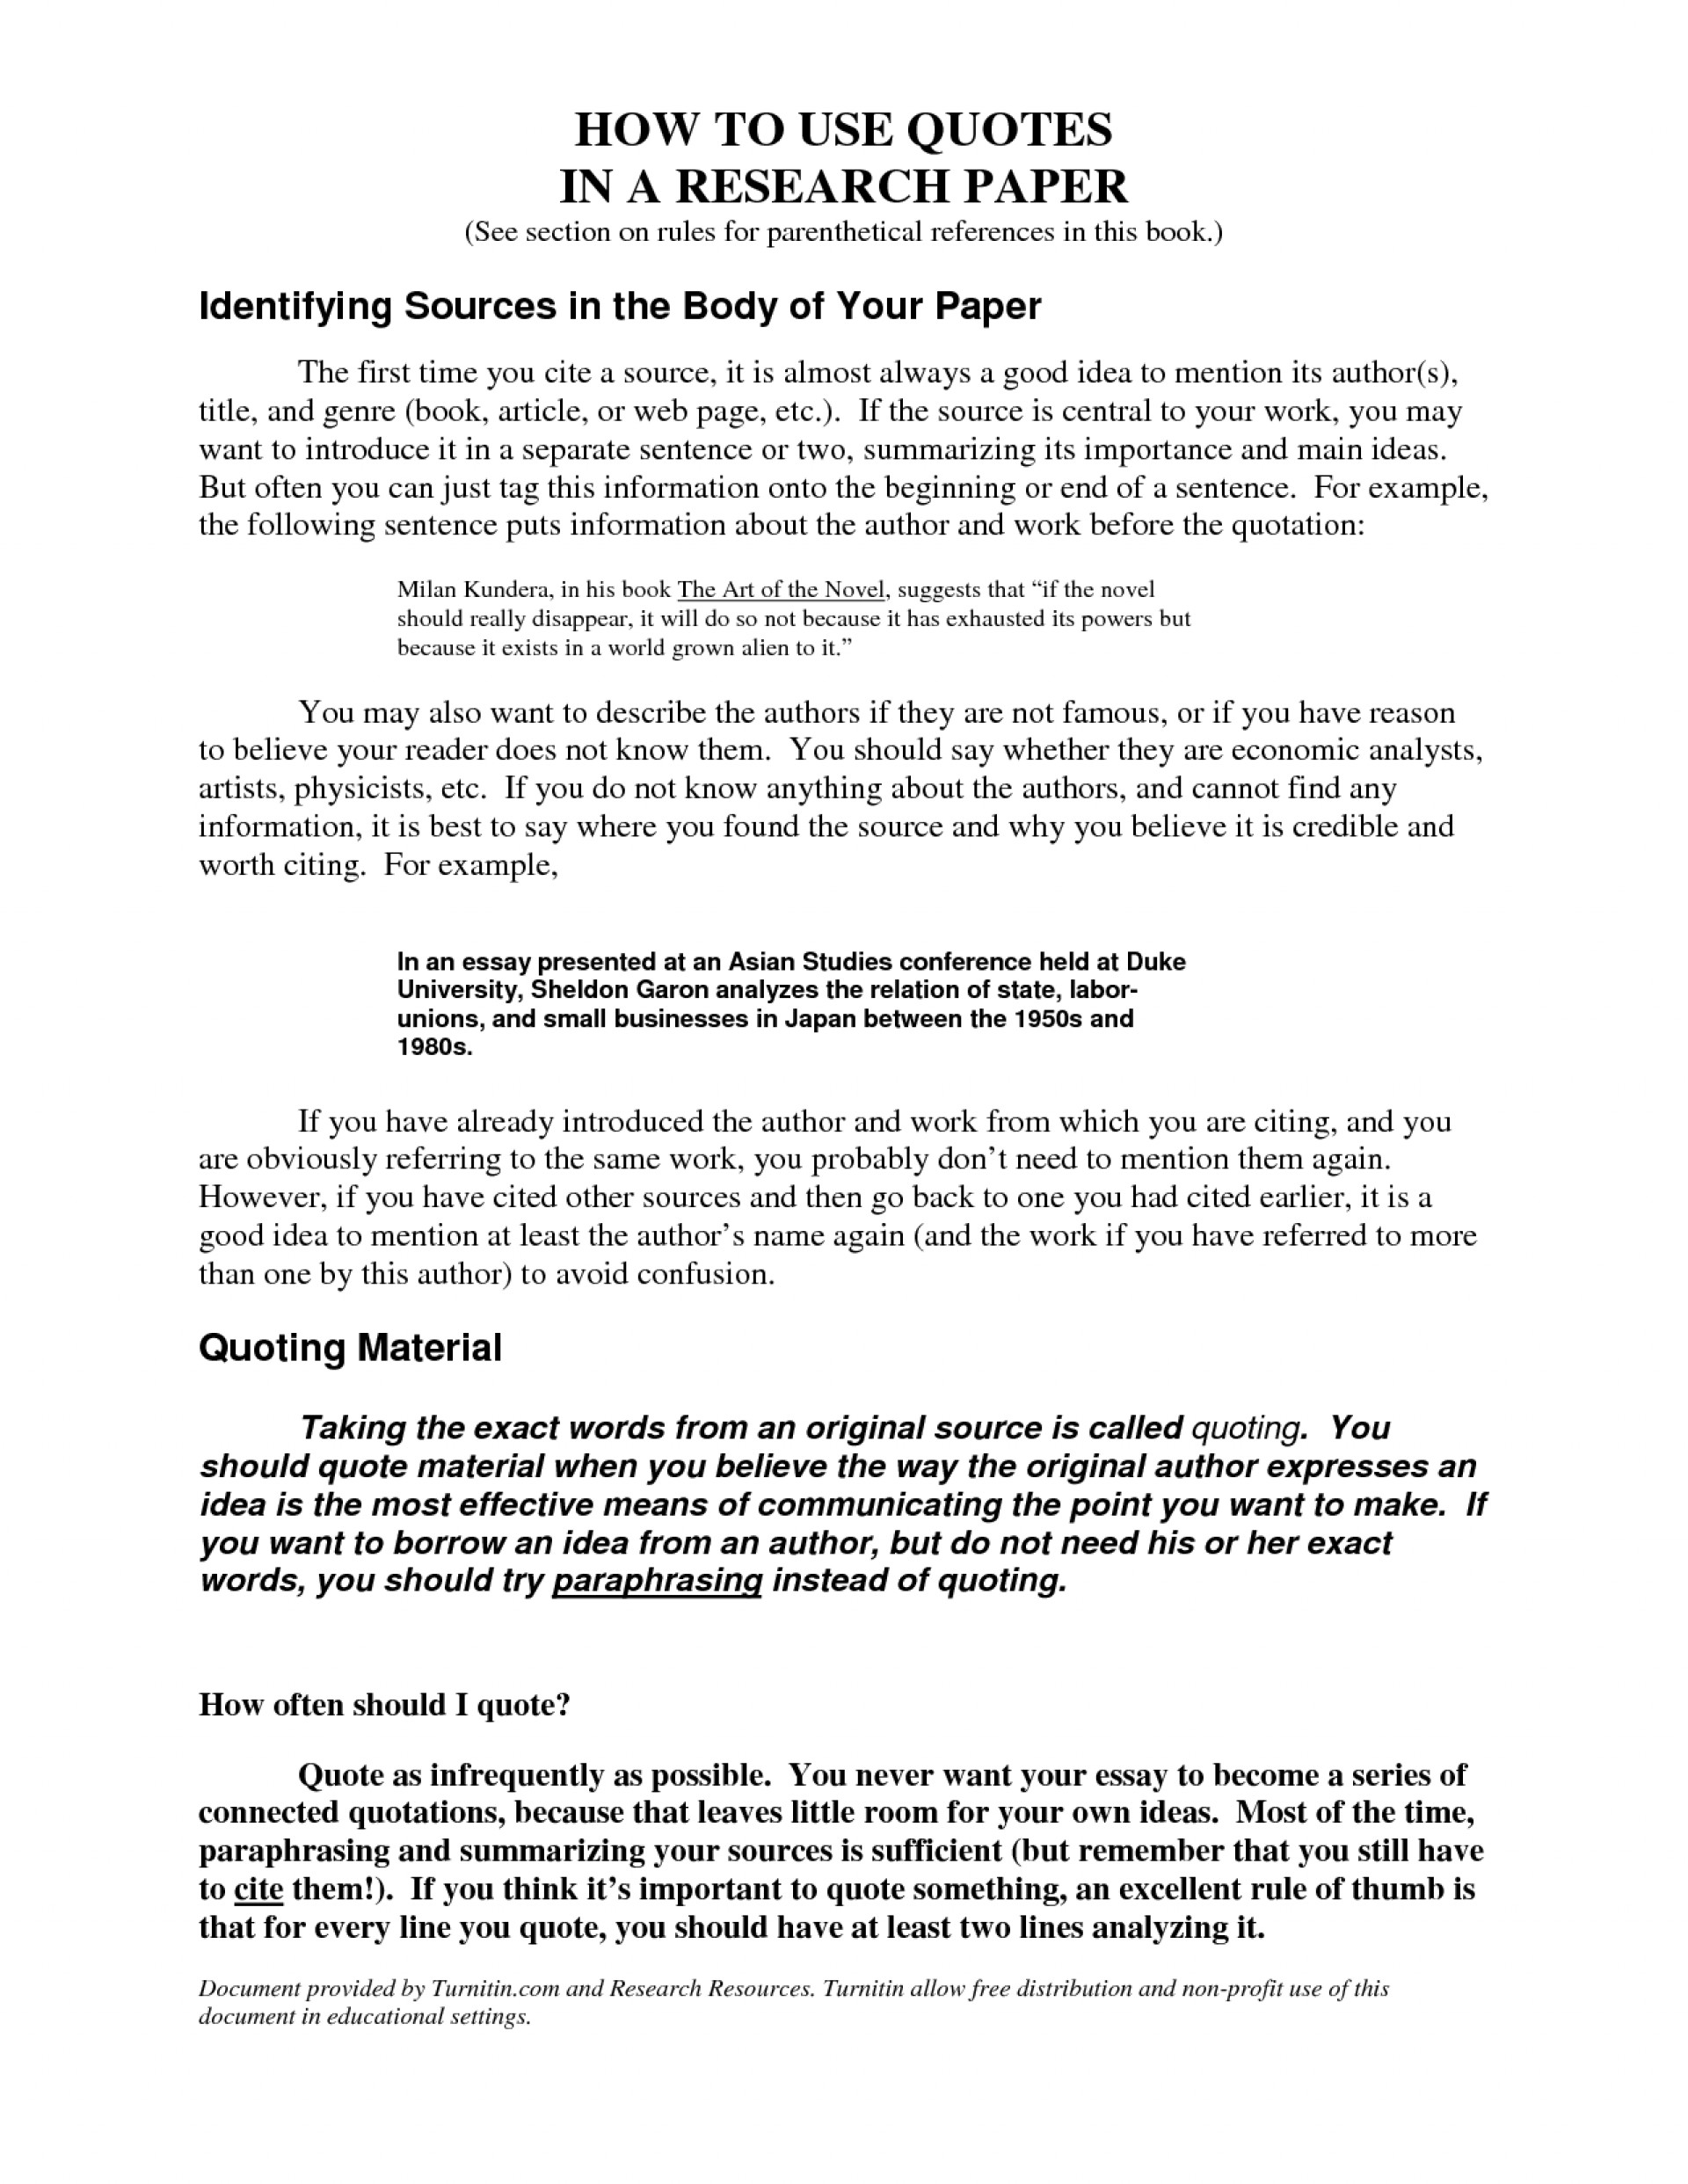 001 Essay Example Best Solutions Of Writing Quotes In Essays Marvelous Embedding On Quotestopics How To Unusual Use Integrate Quotations University Essays-apa Or Mla 1920